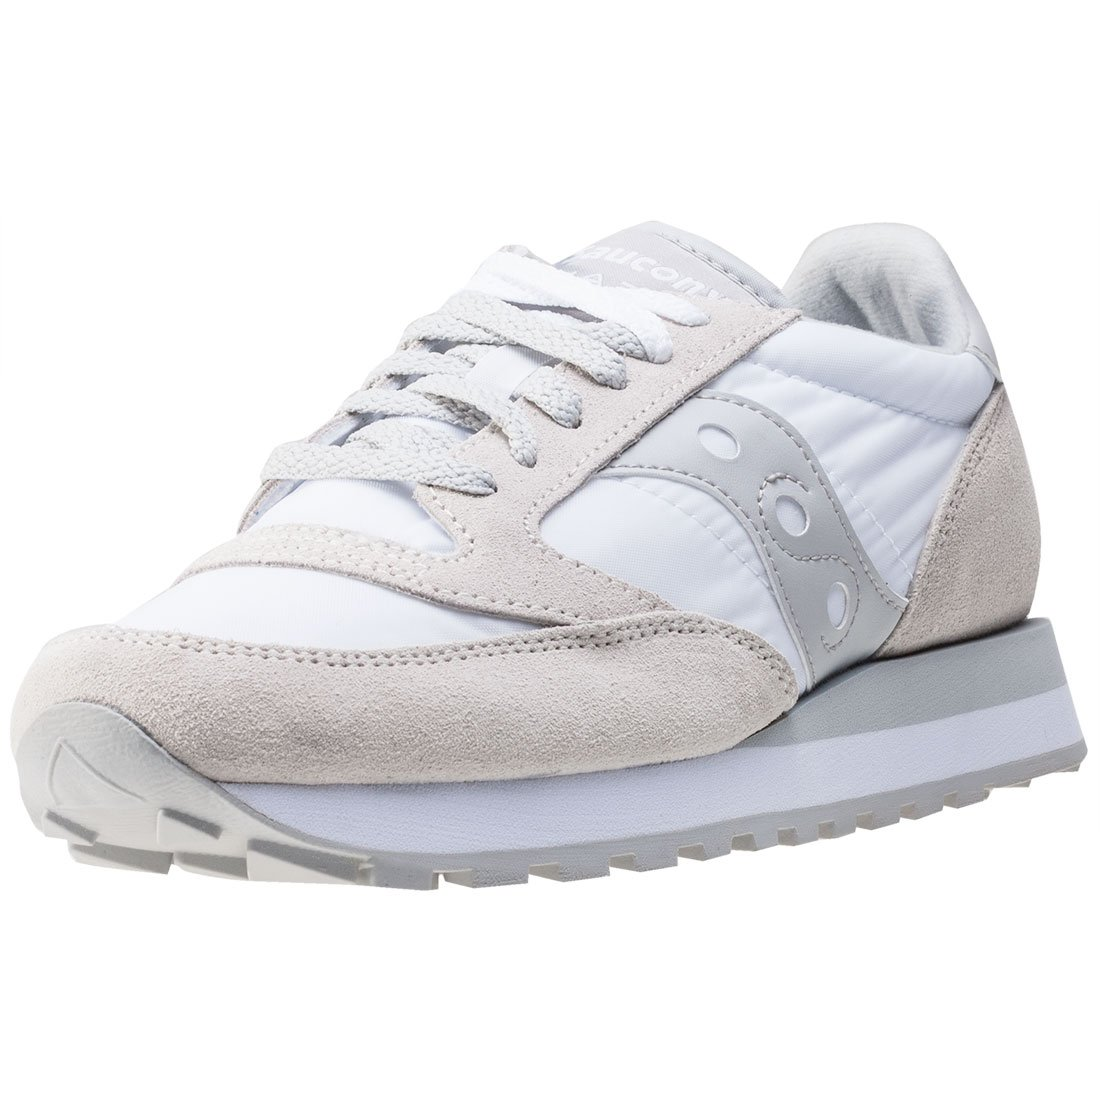 TALLA 40.5 EU. Saucony Jazz Original, Zapatillas